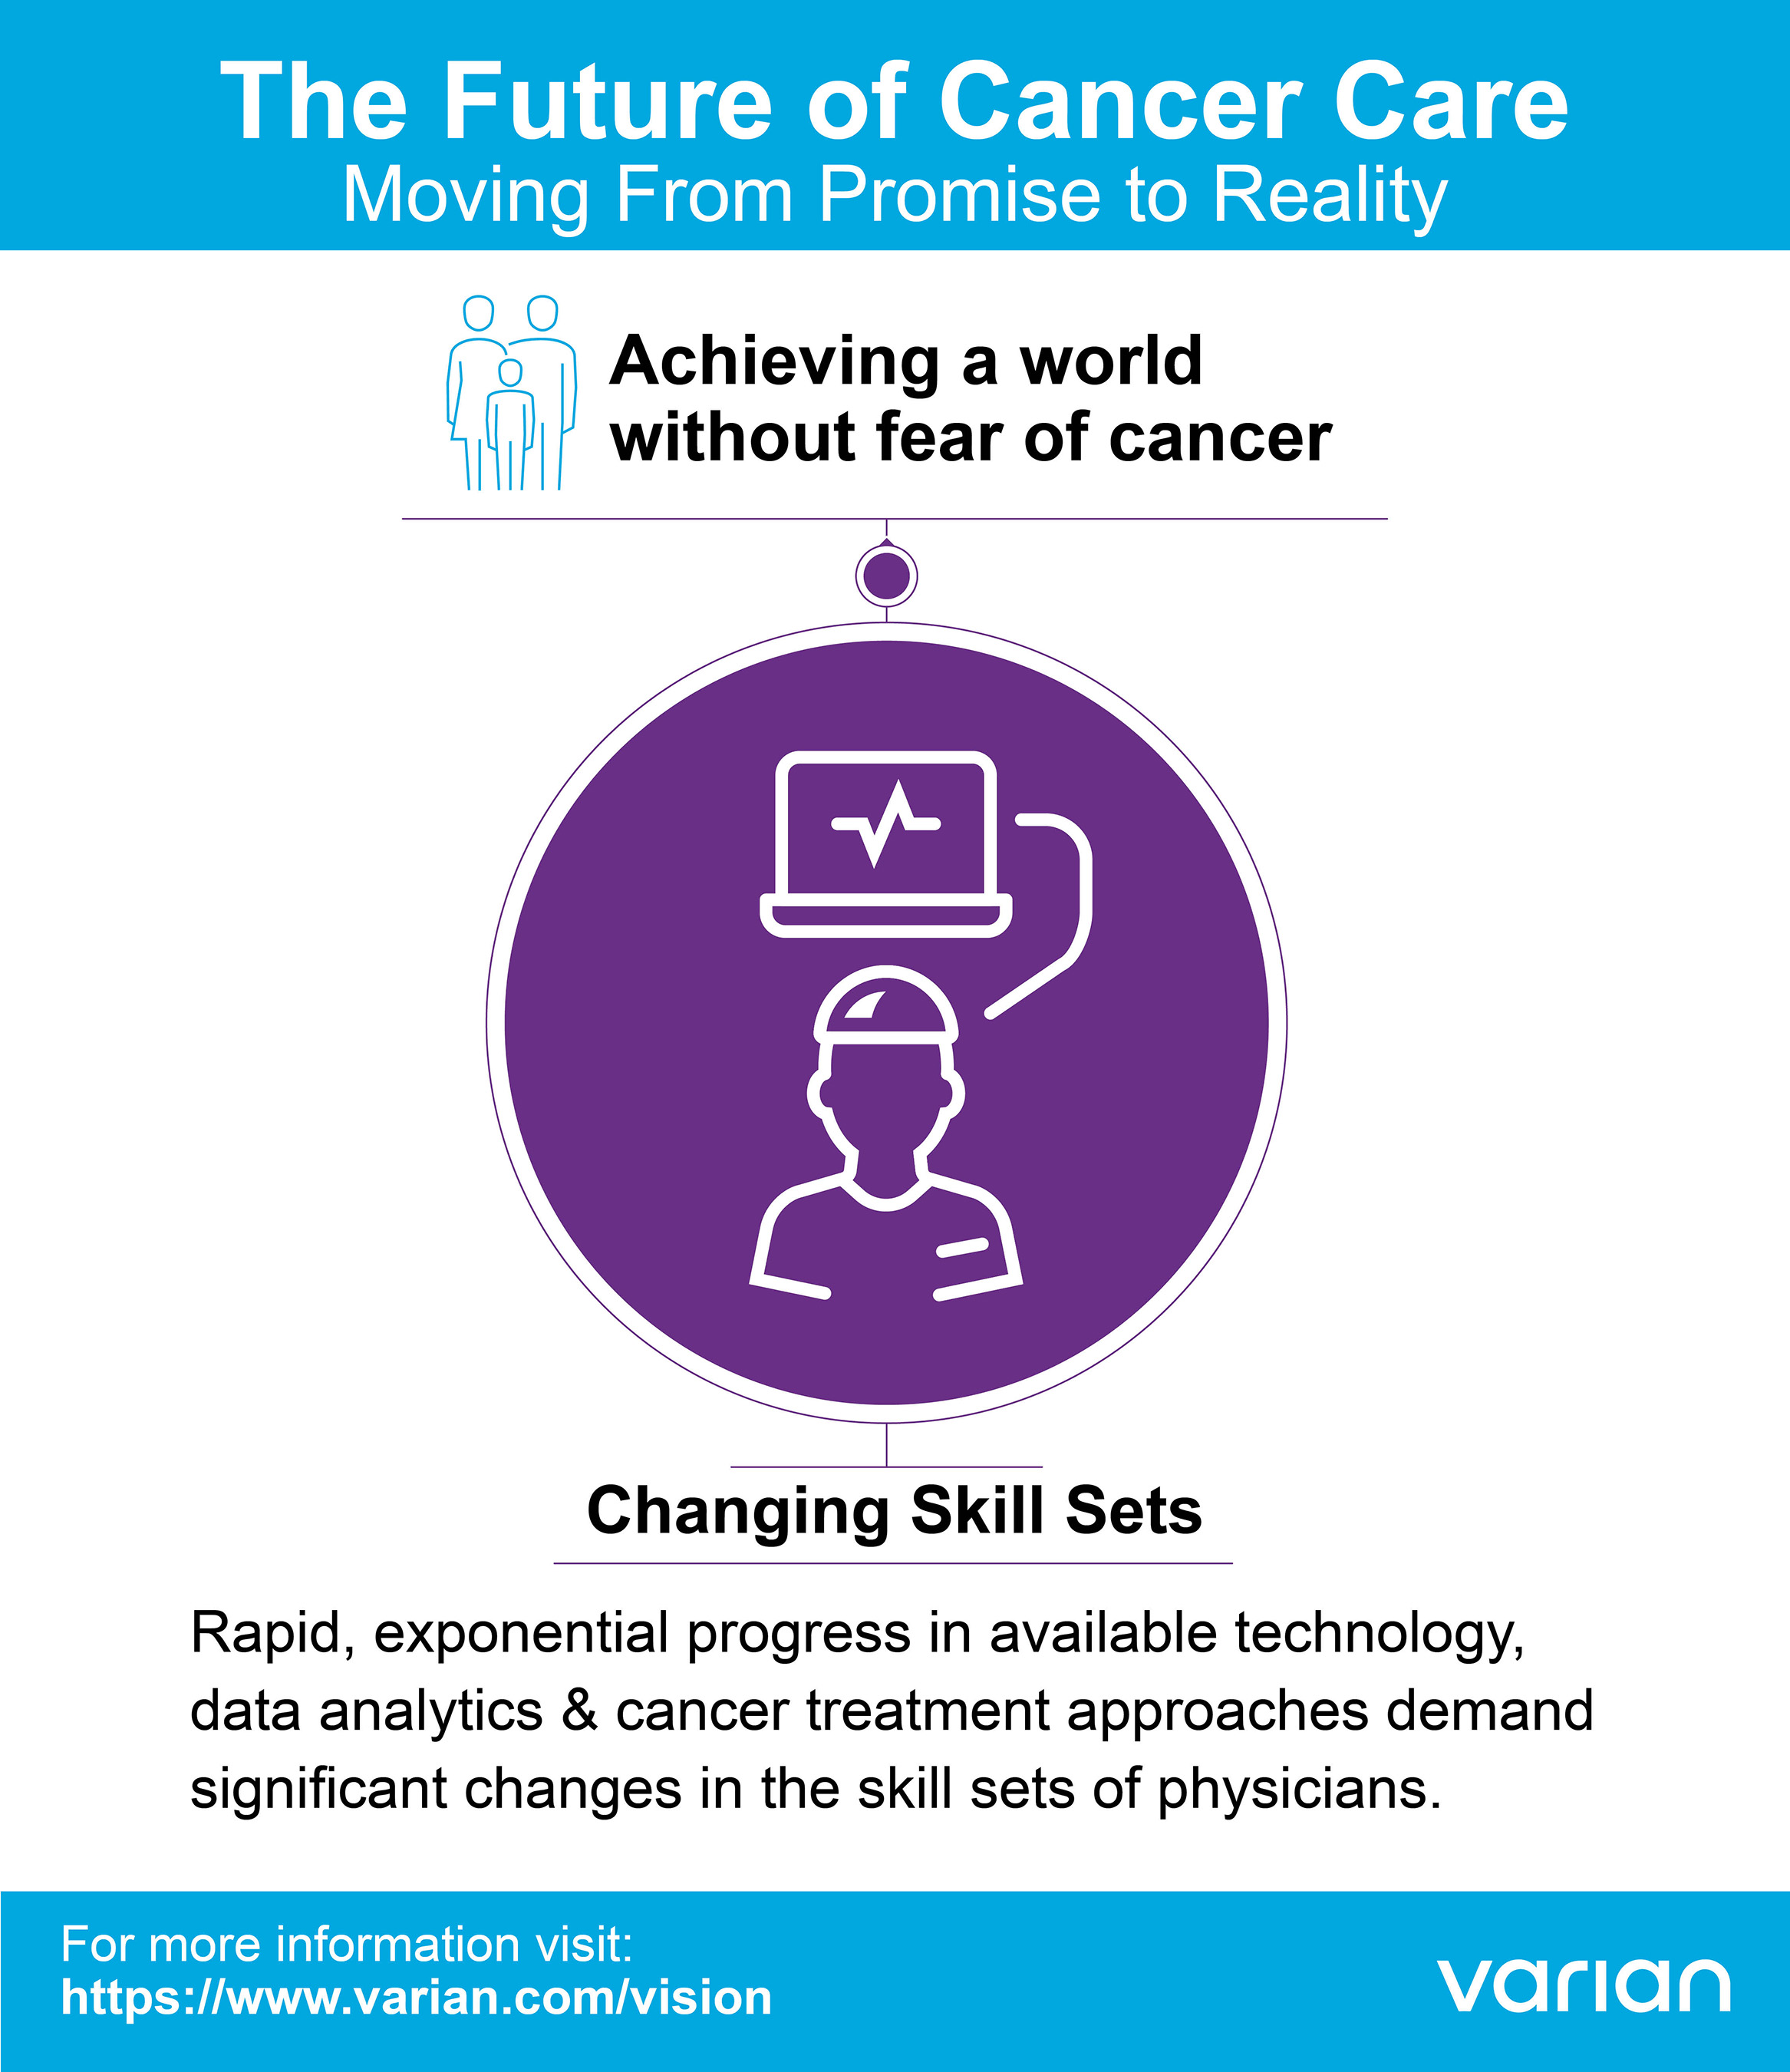 Changing Skill Sets of Physicians